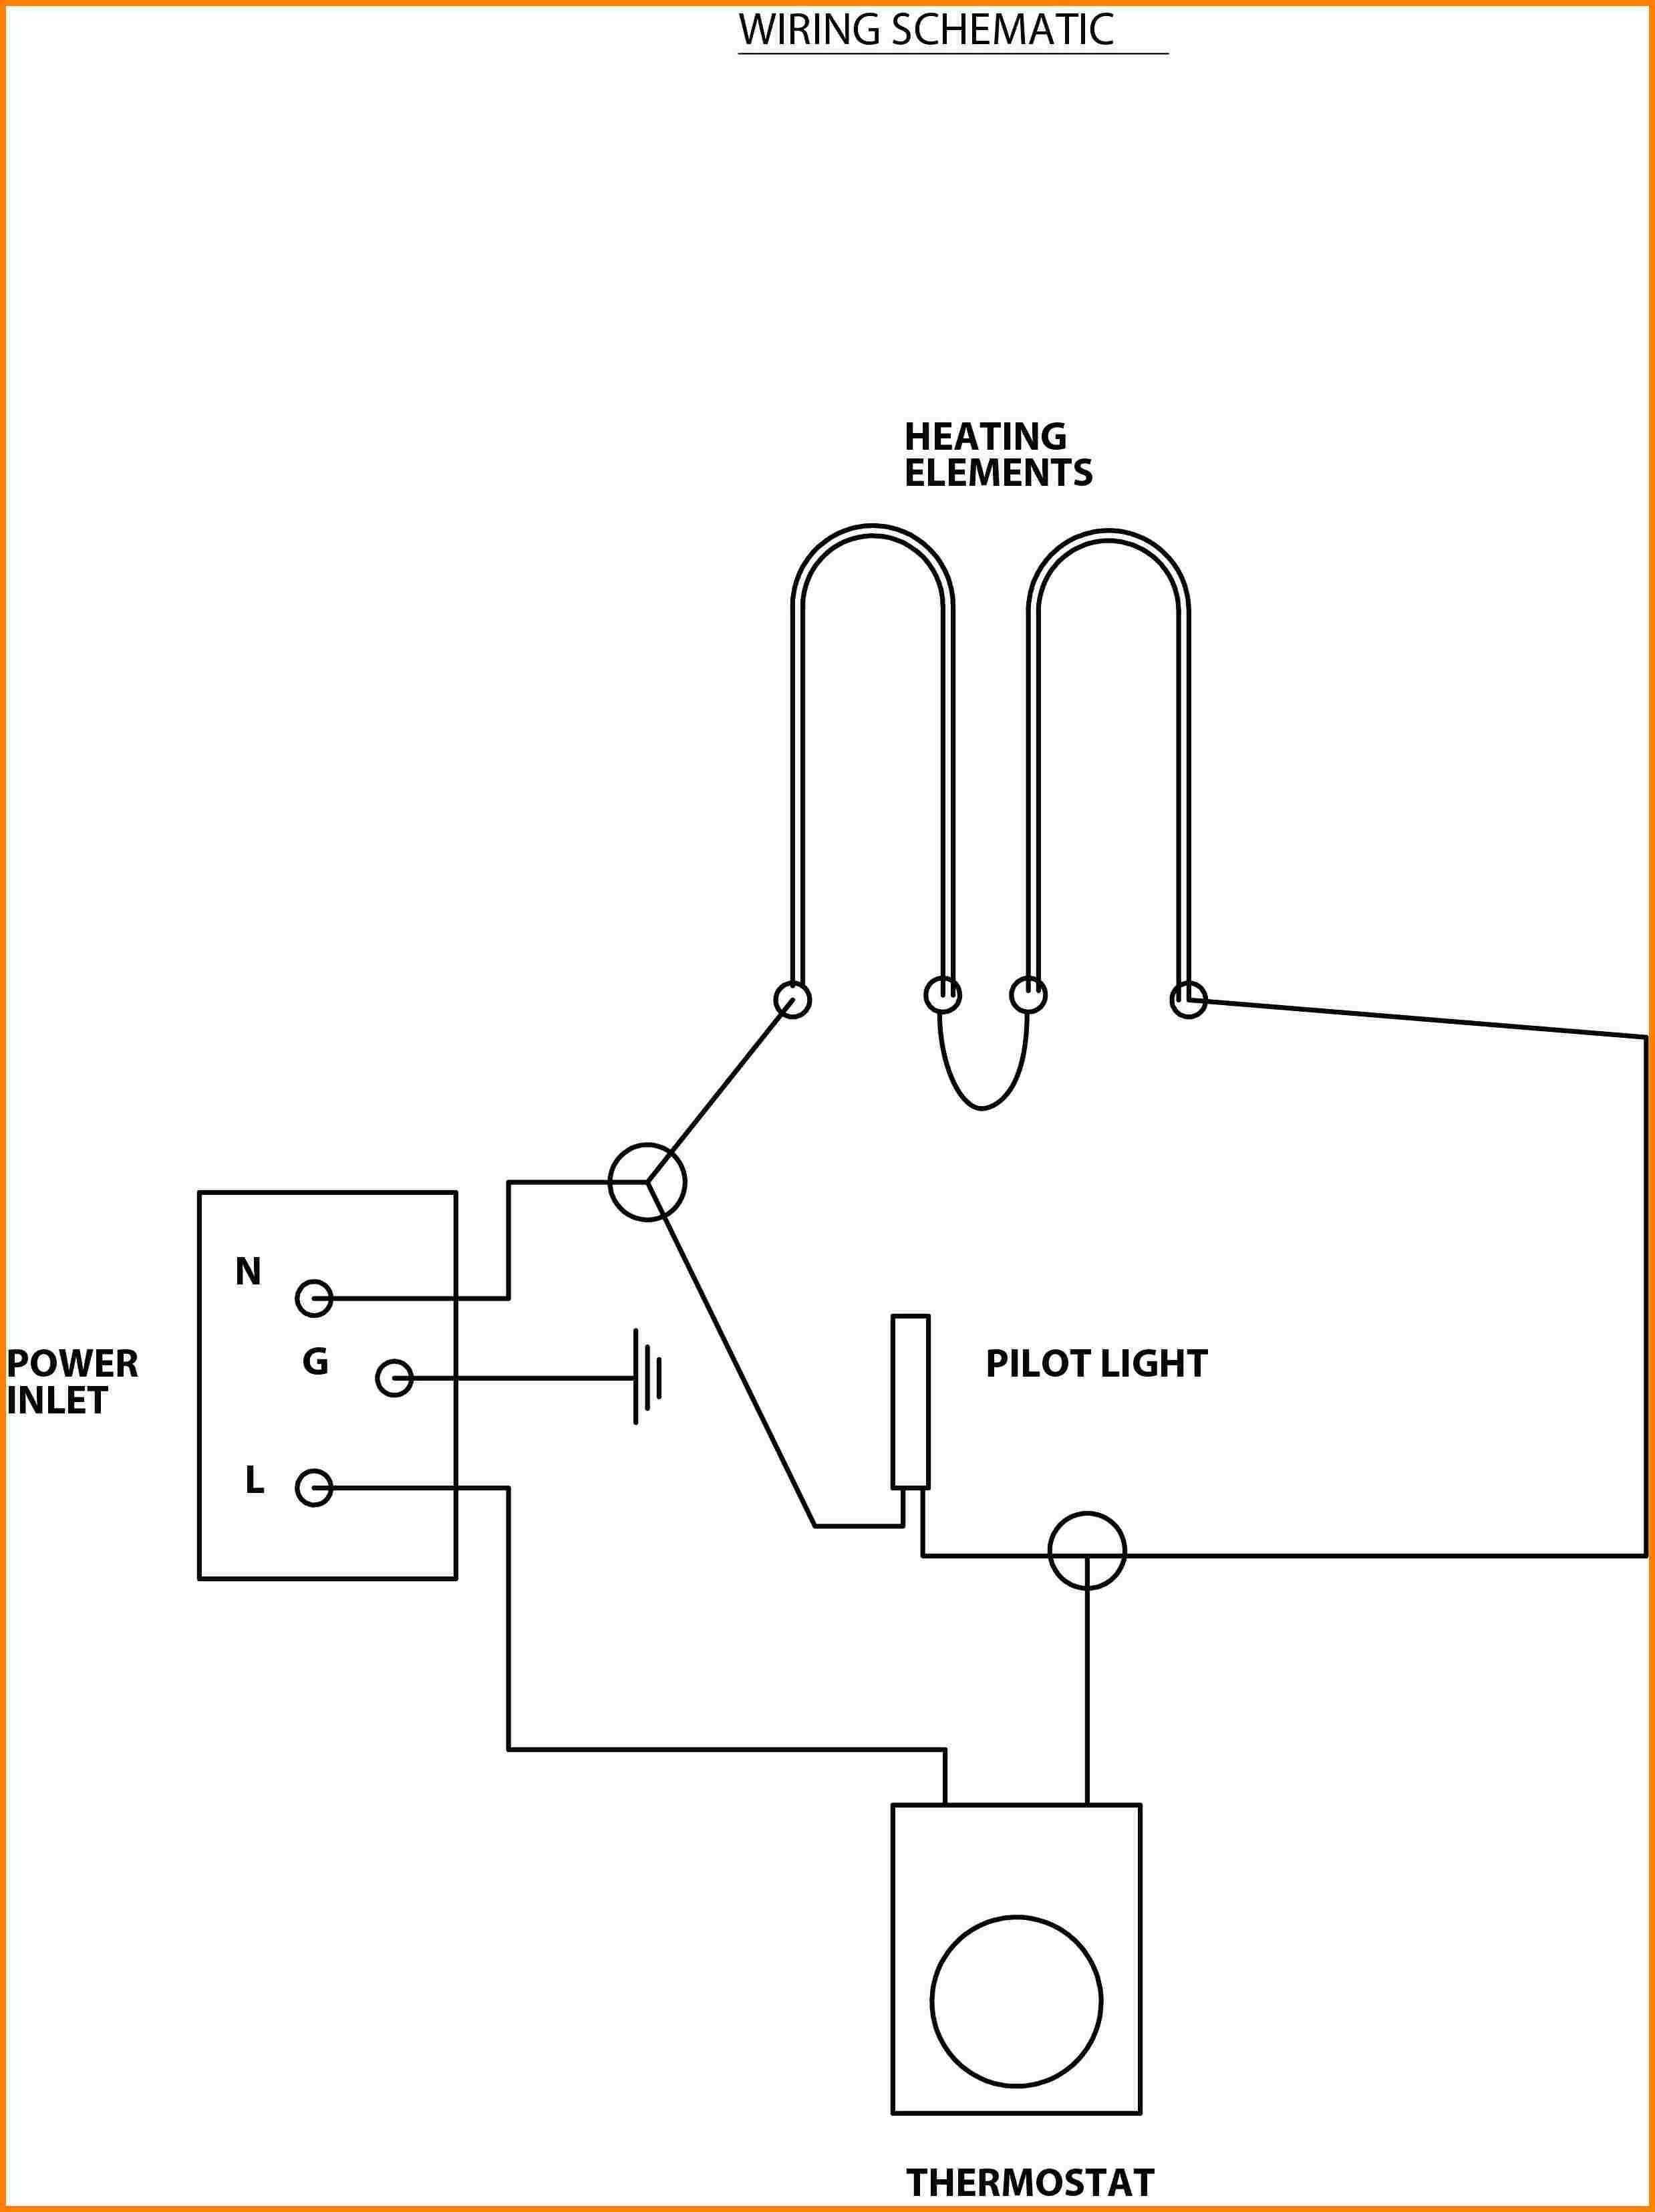 Baseboard Heater Wiring Diagram Thermostat from i.pinimg.com